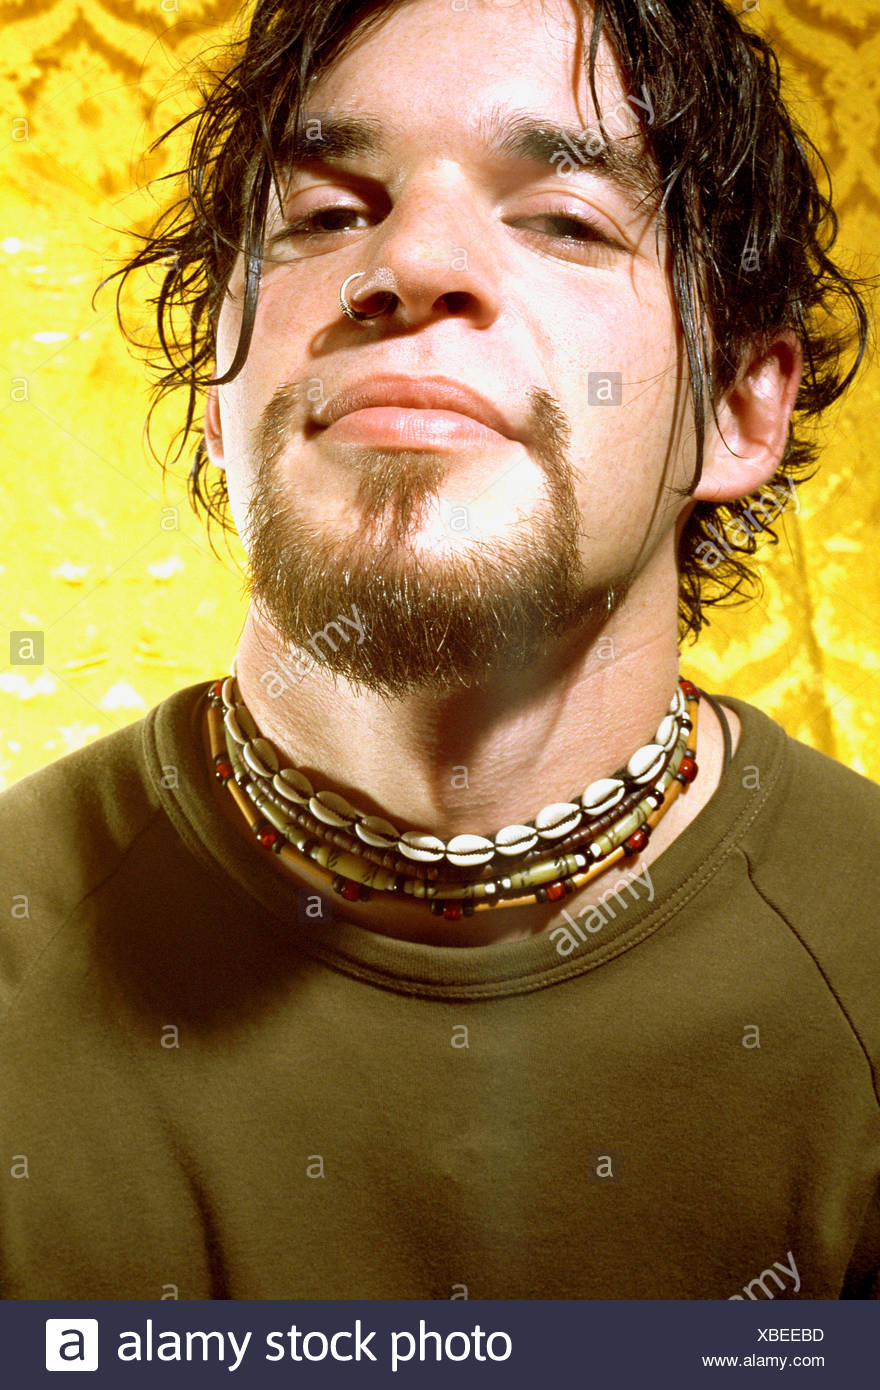 close up portrait of a young man with beard and pierced nose Stock Photo